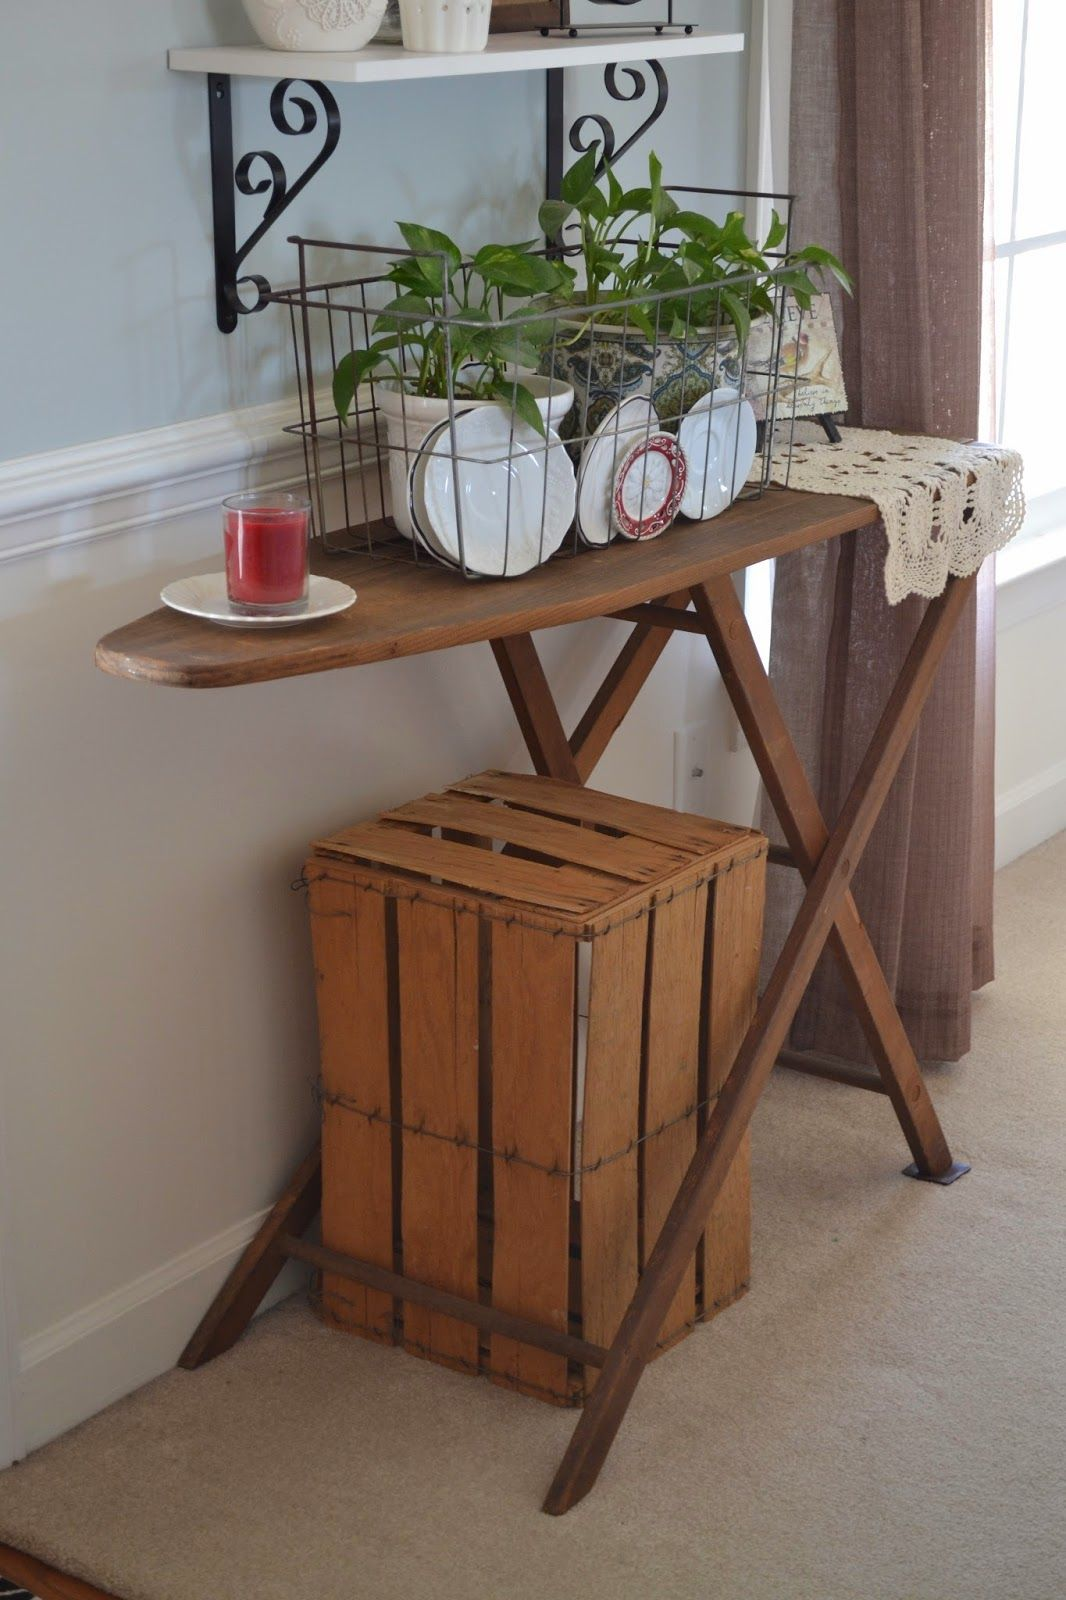 chair step stool ironing board swivel knoll antique furniture